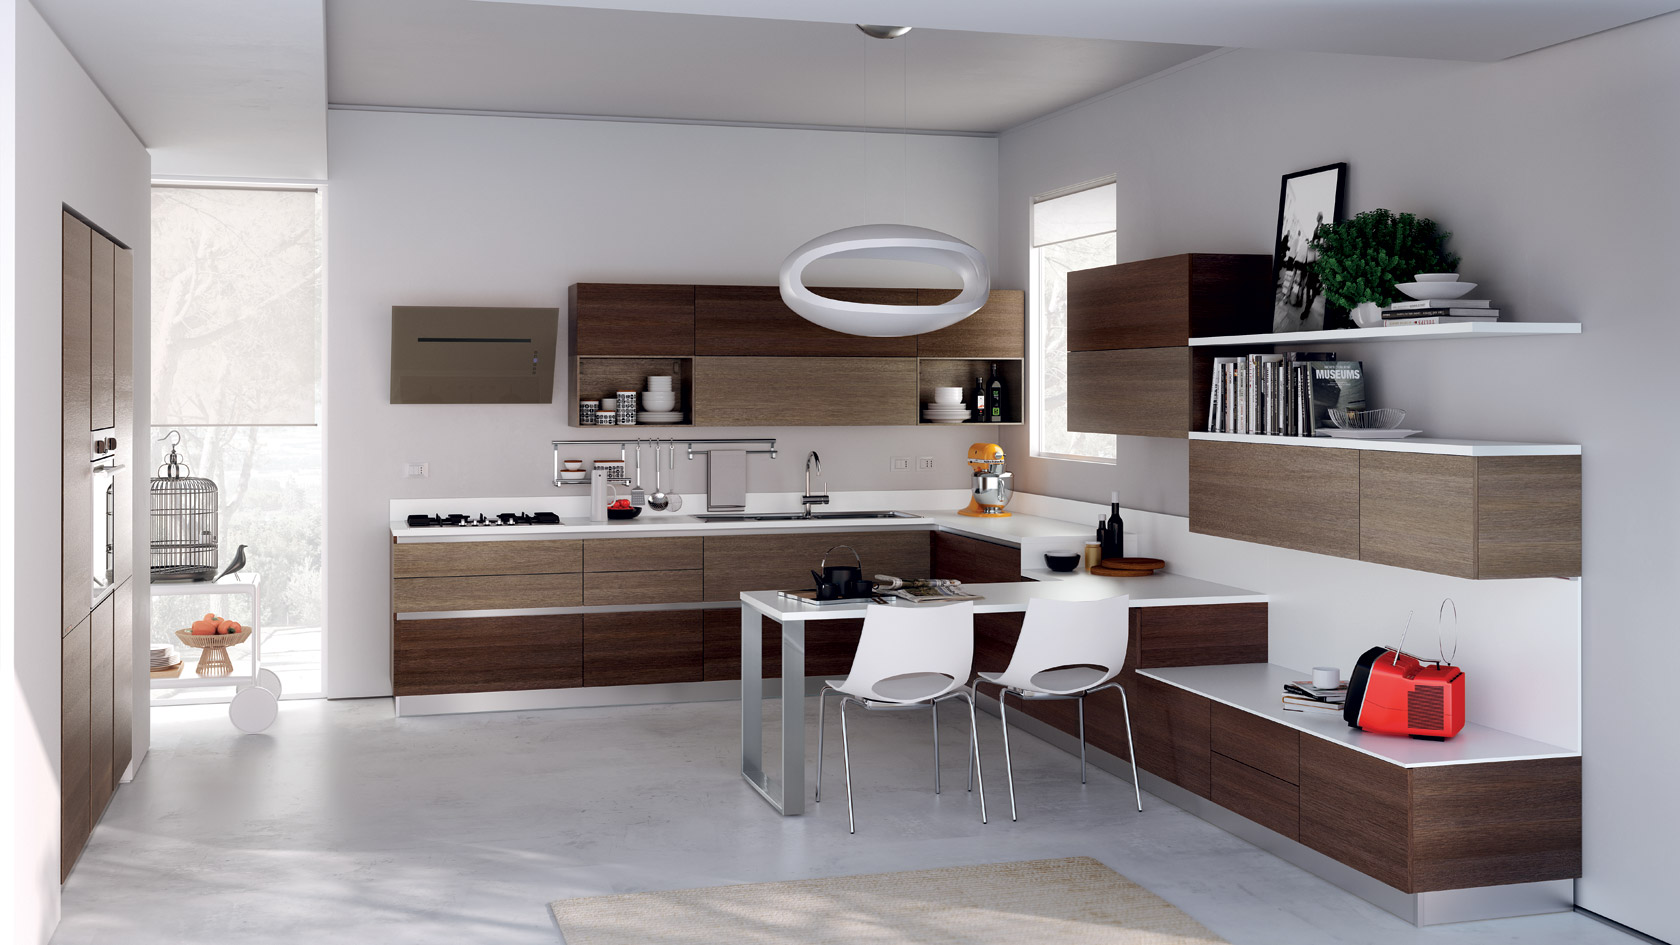 Emejing Composizione Cucina On Line Photos - Home Ideas - tyger.us